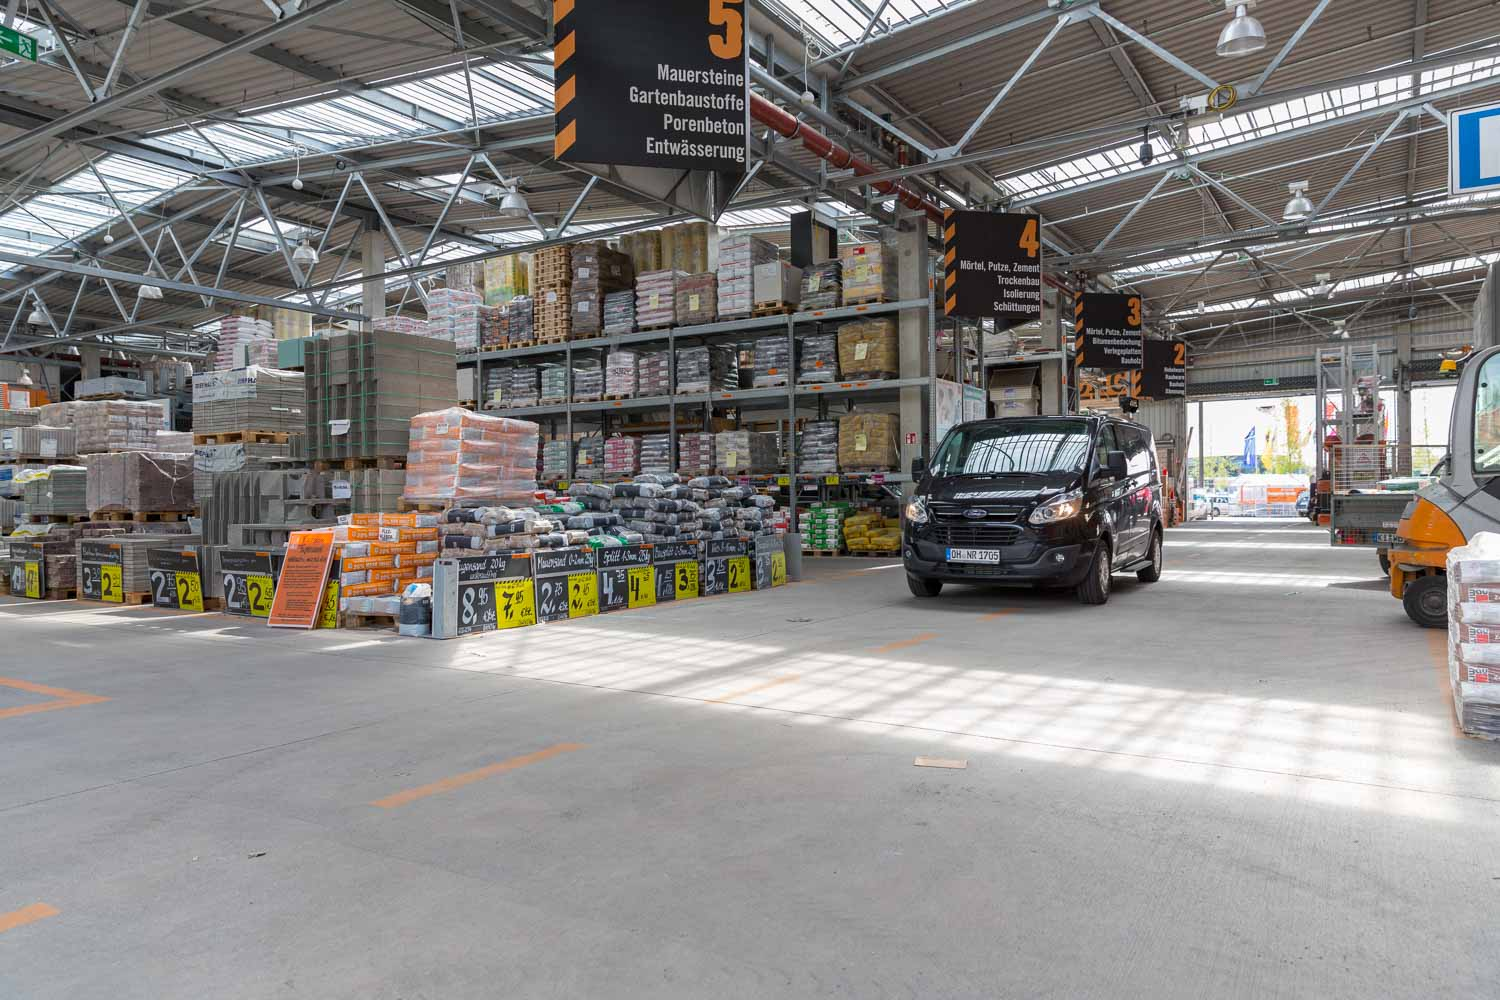 Hornbach beim LUV SHOPPING in Lübeck